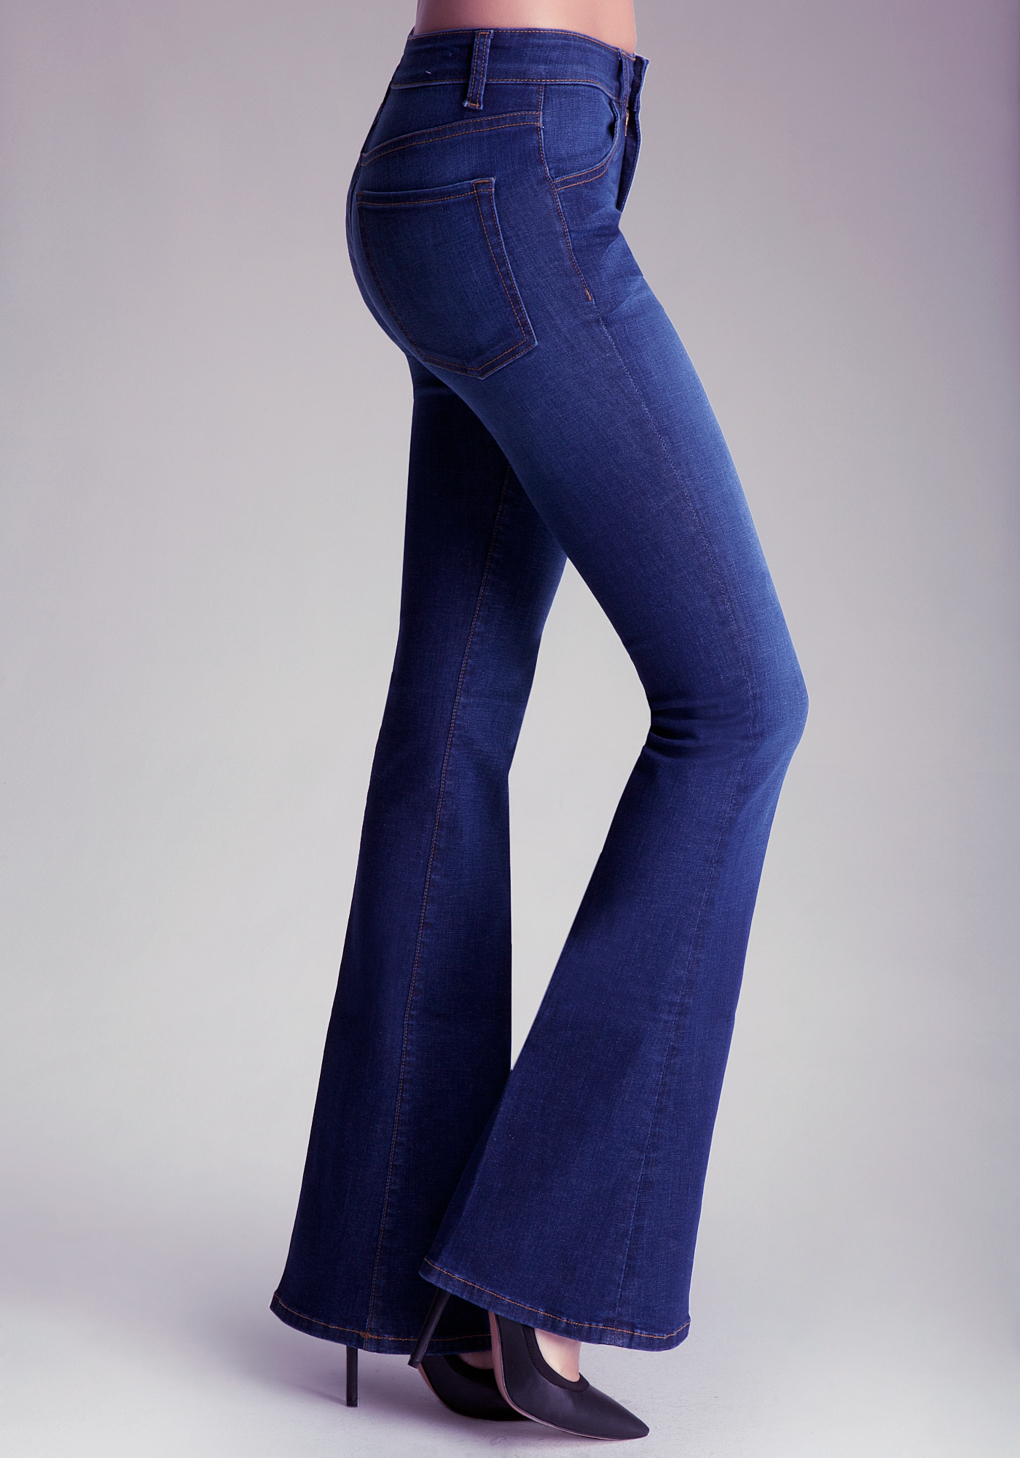 Bebe Bell Bottom Jeans in Blue | Lyst